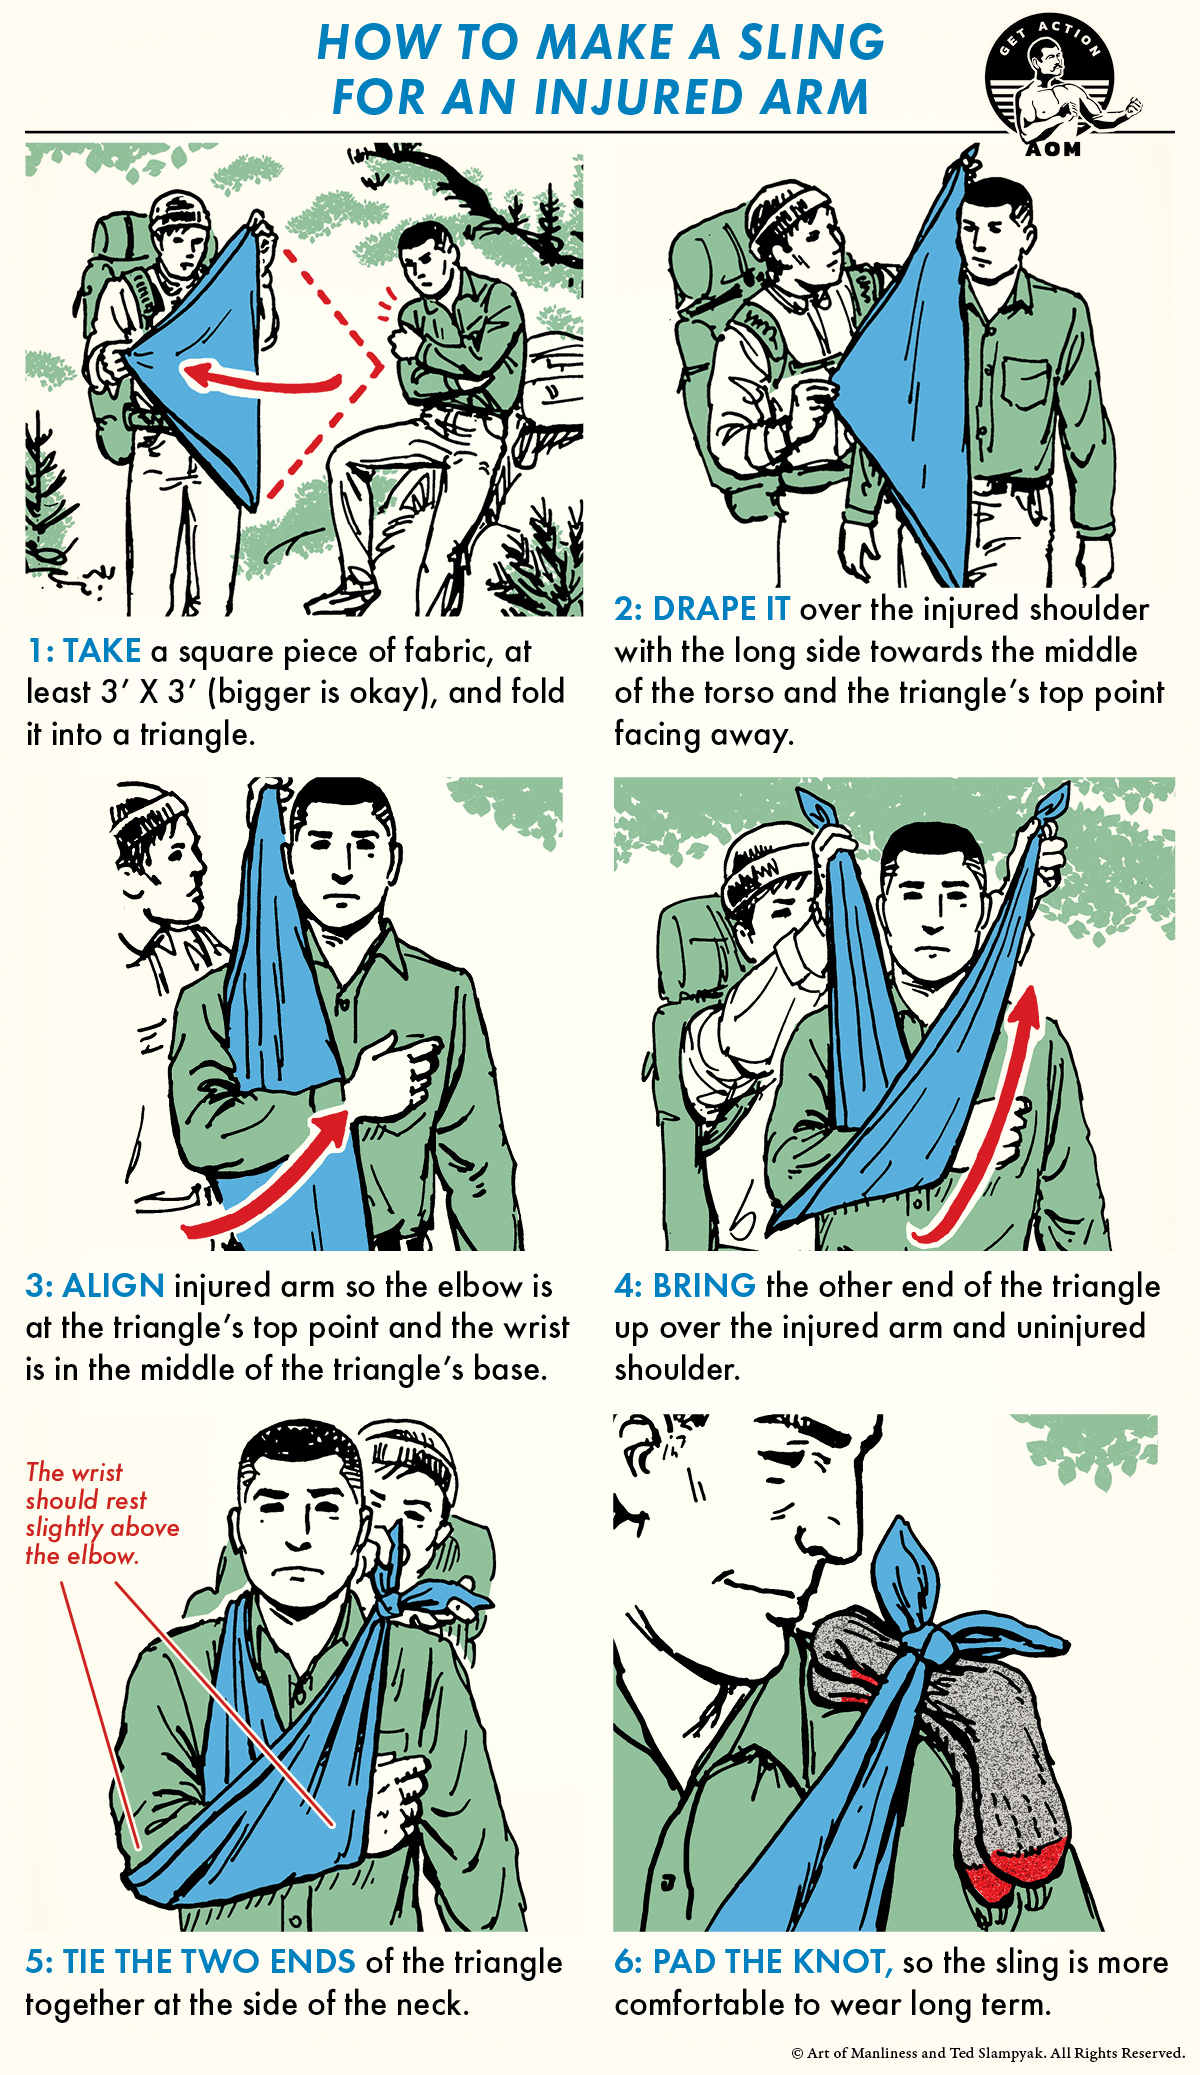 illustrated how-to guide feating man making sling for injured friend.